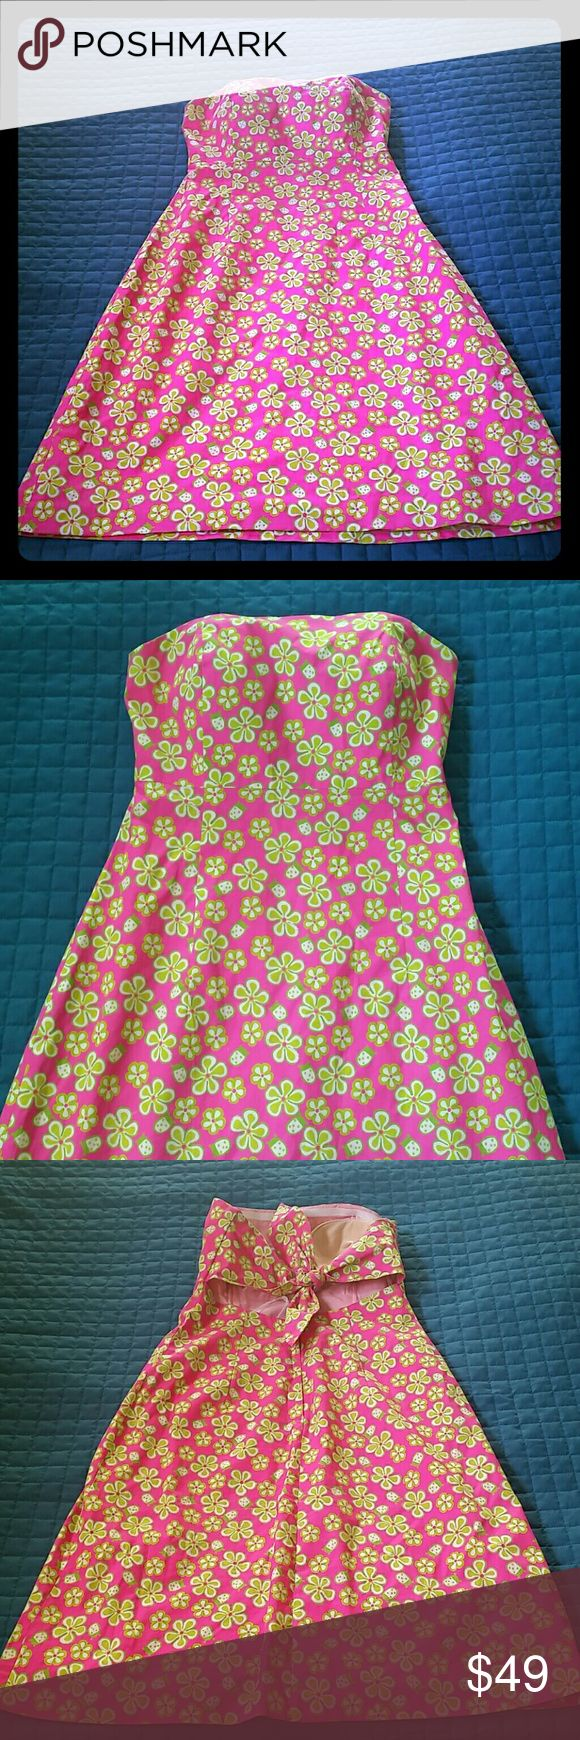 4 Lilly Pulitzer Strapless Summer Dress Like new condition.  Size 4 goes to the knees.  Neon pink super fun and catchy Lilly Pulitzer Dresses Midi